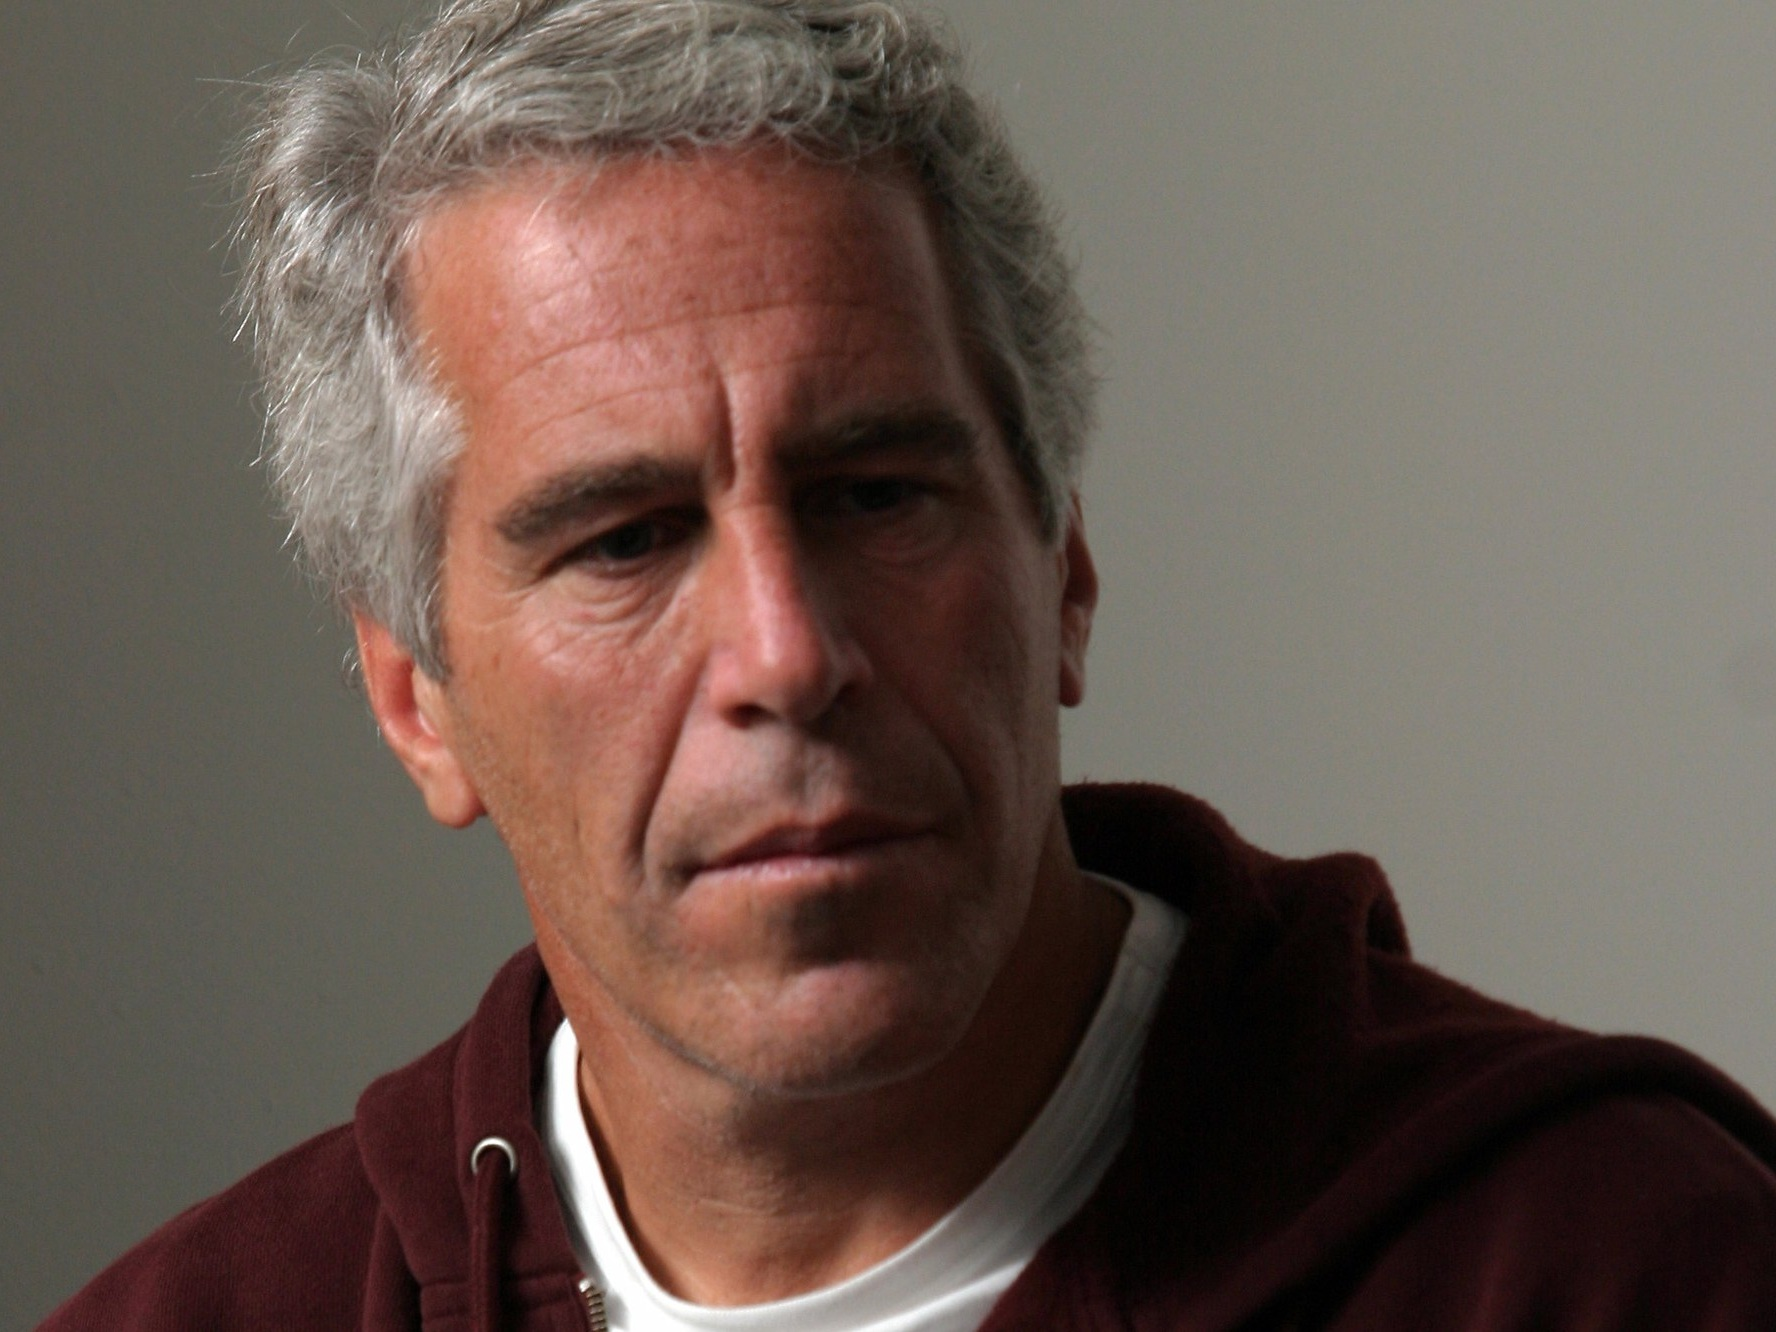 jeffrey-epstein-arrested.jpg